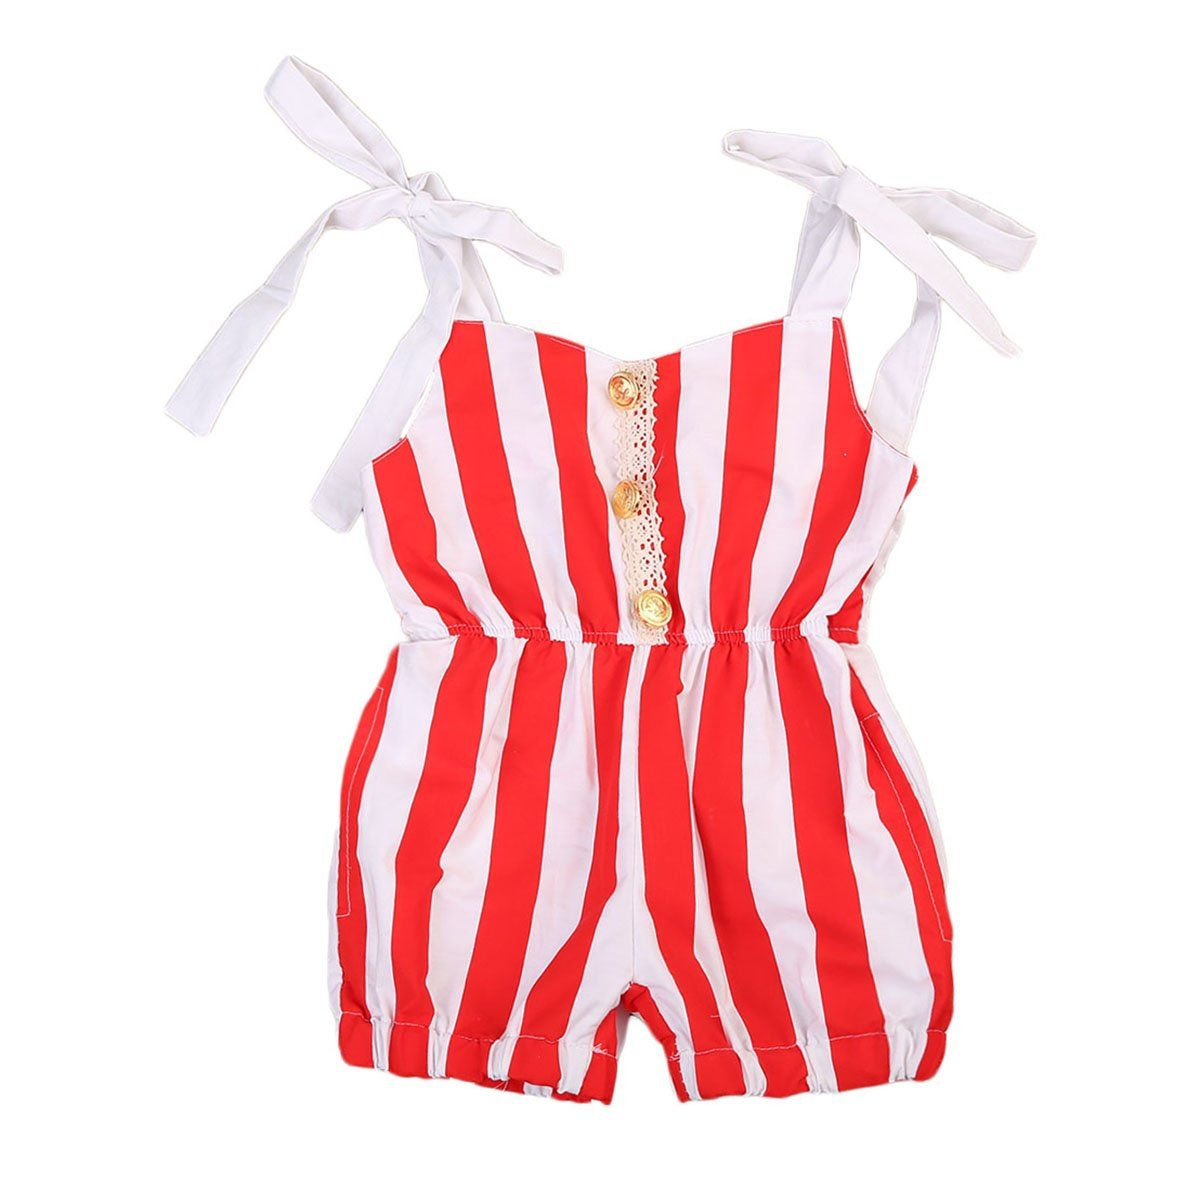 844fa03f8bf5 Cute Newborn Baby Girls Red Striped Romper Lace Shoulder Jumpsuit Outfits  Sunsuit Clothes